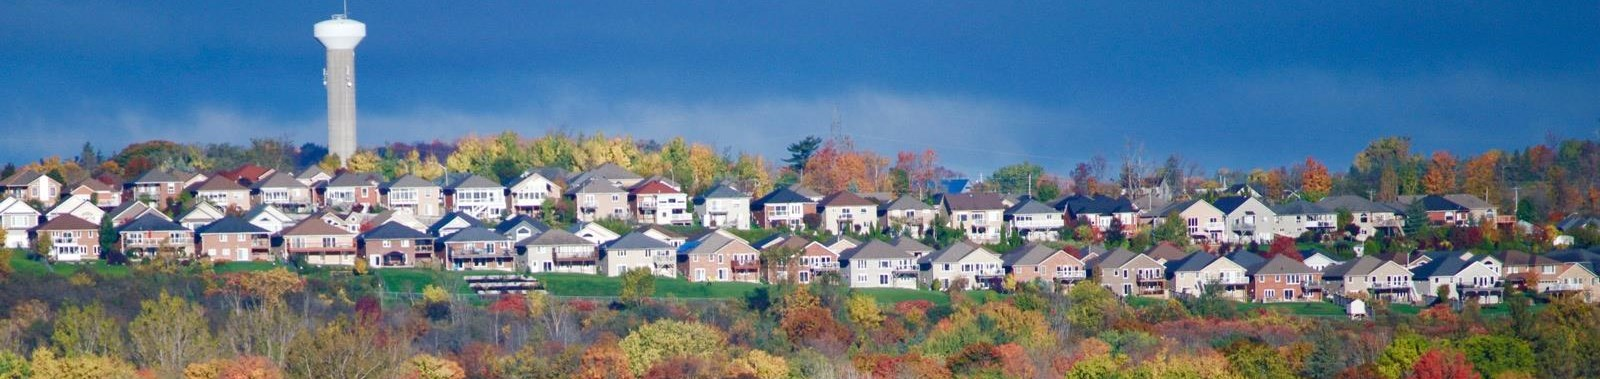 Landscape view of city houses and trees in the fall